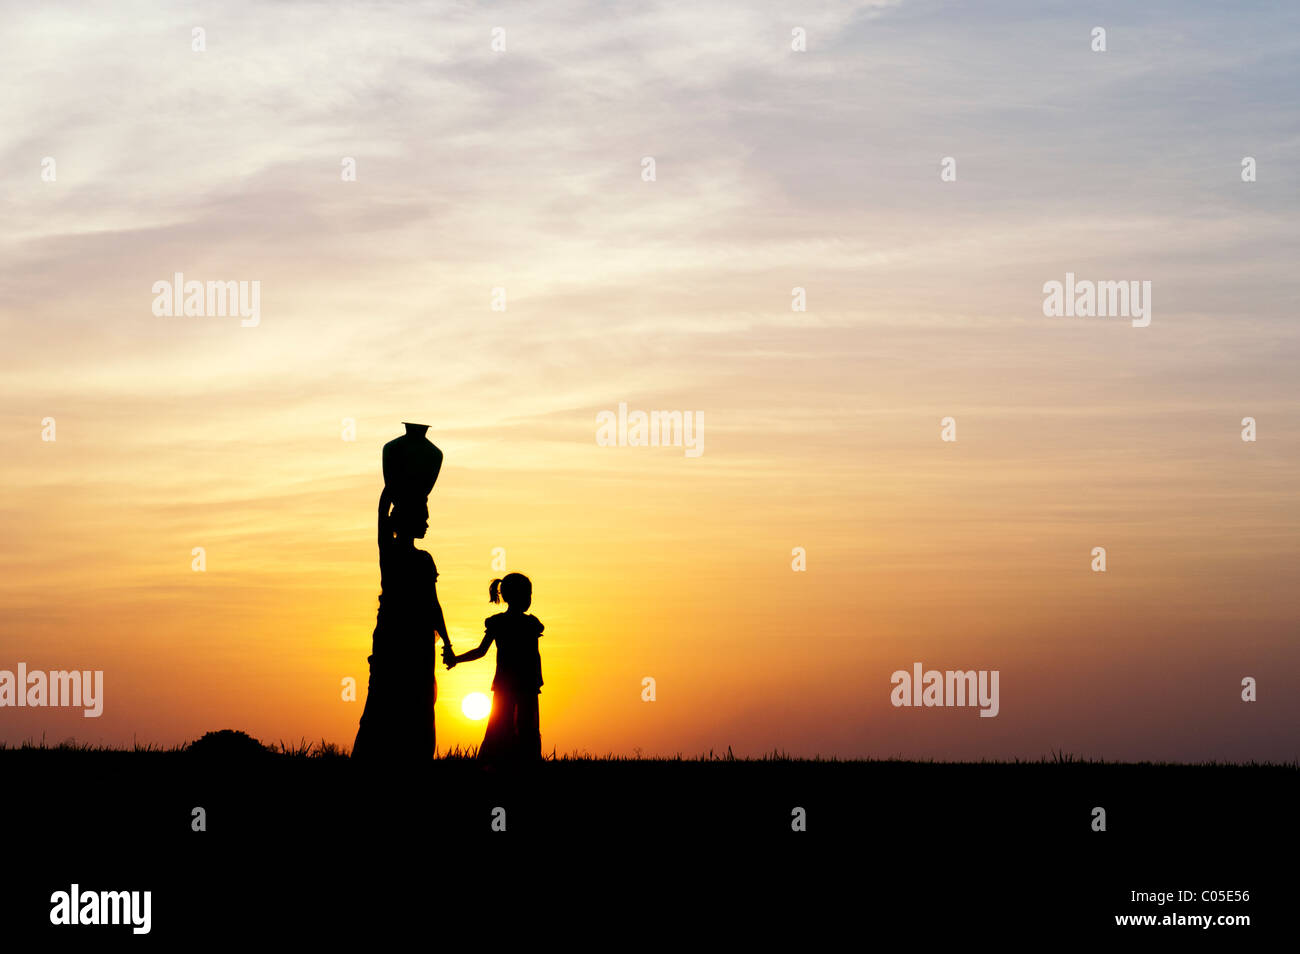 Indian mother carrying water pot with child in the indian countryside at sunset. Silhouette - Stock Image